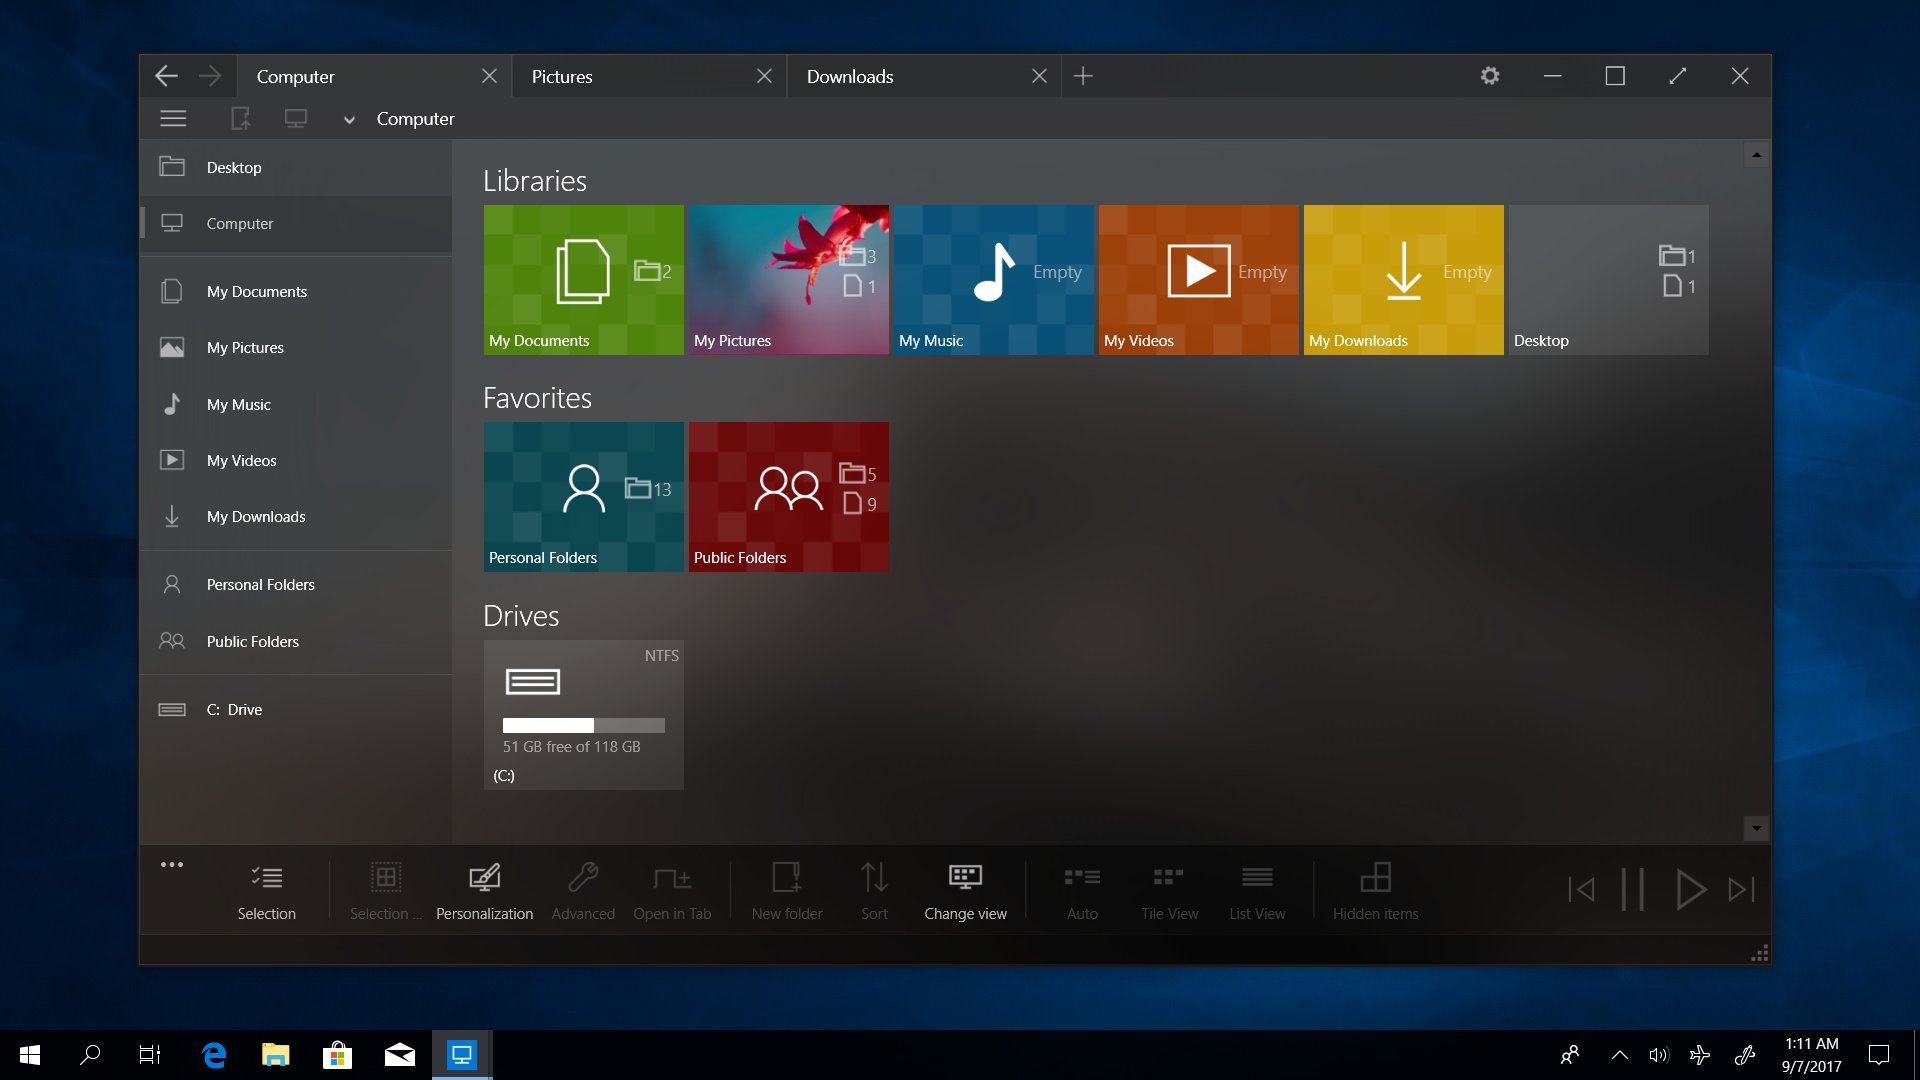 free windows 10 update for windows 8.1 users